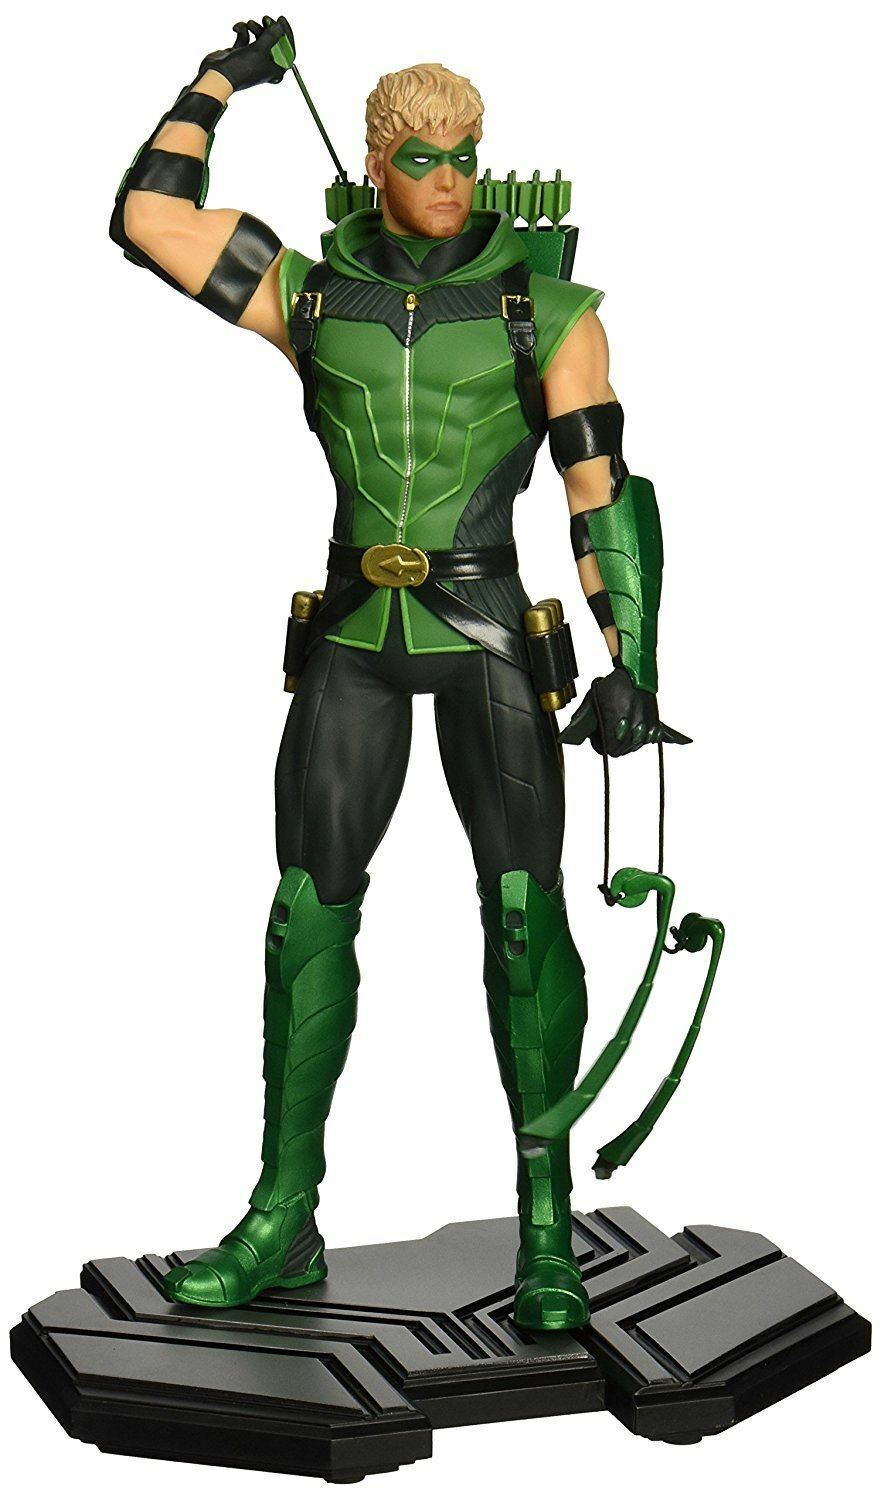 Dc comics icons Grün arrow limited edition formte statue abbildung modell